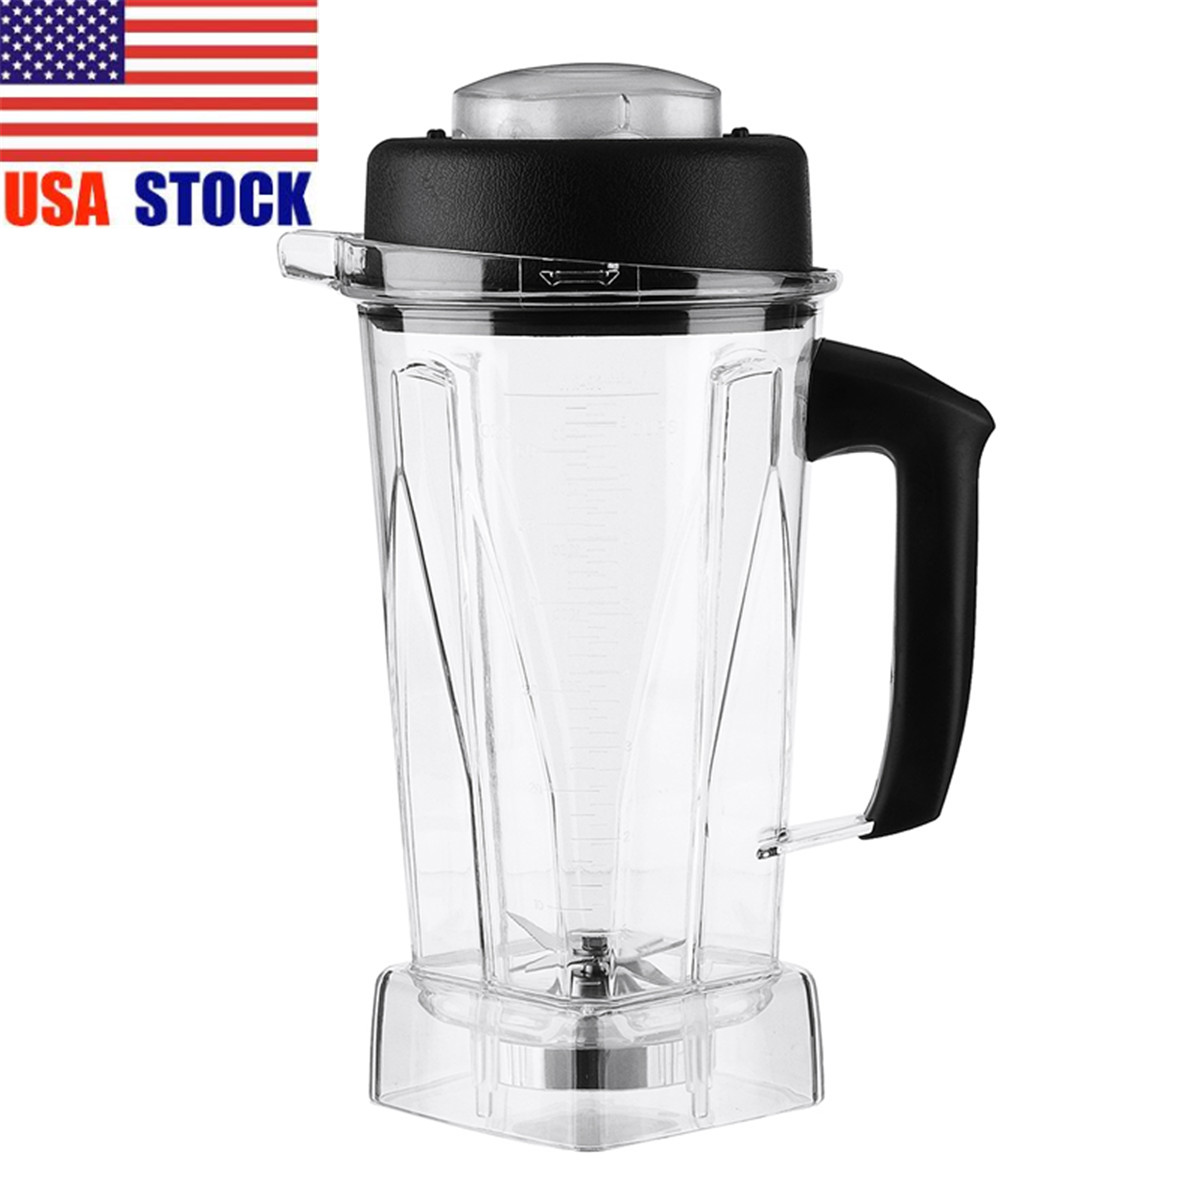 2L Container Jar Jug Pitcher Cup Commercial Blender/ Spare Parts For Vitamix 60oz Home Kitchen Appliance Food Mixer Part Durable